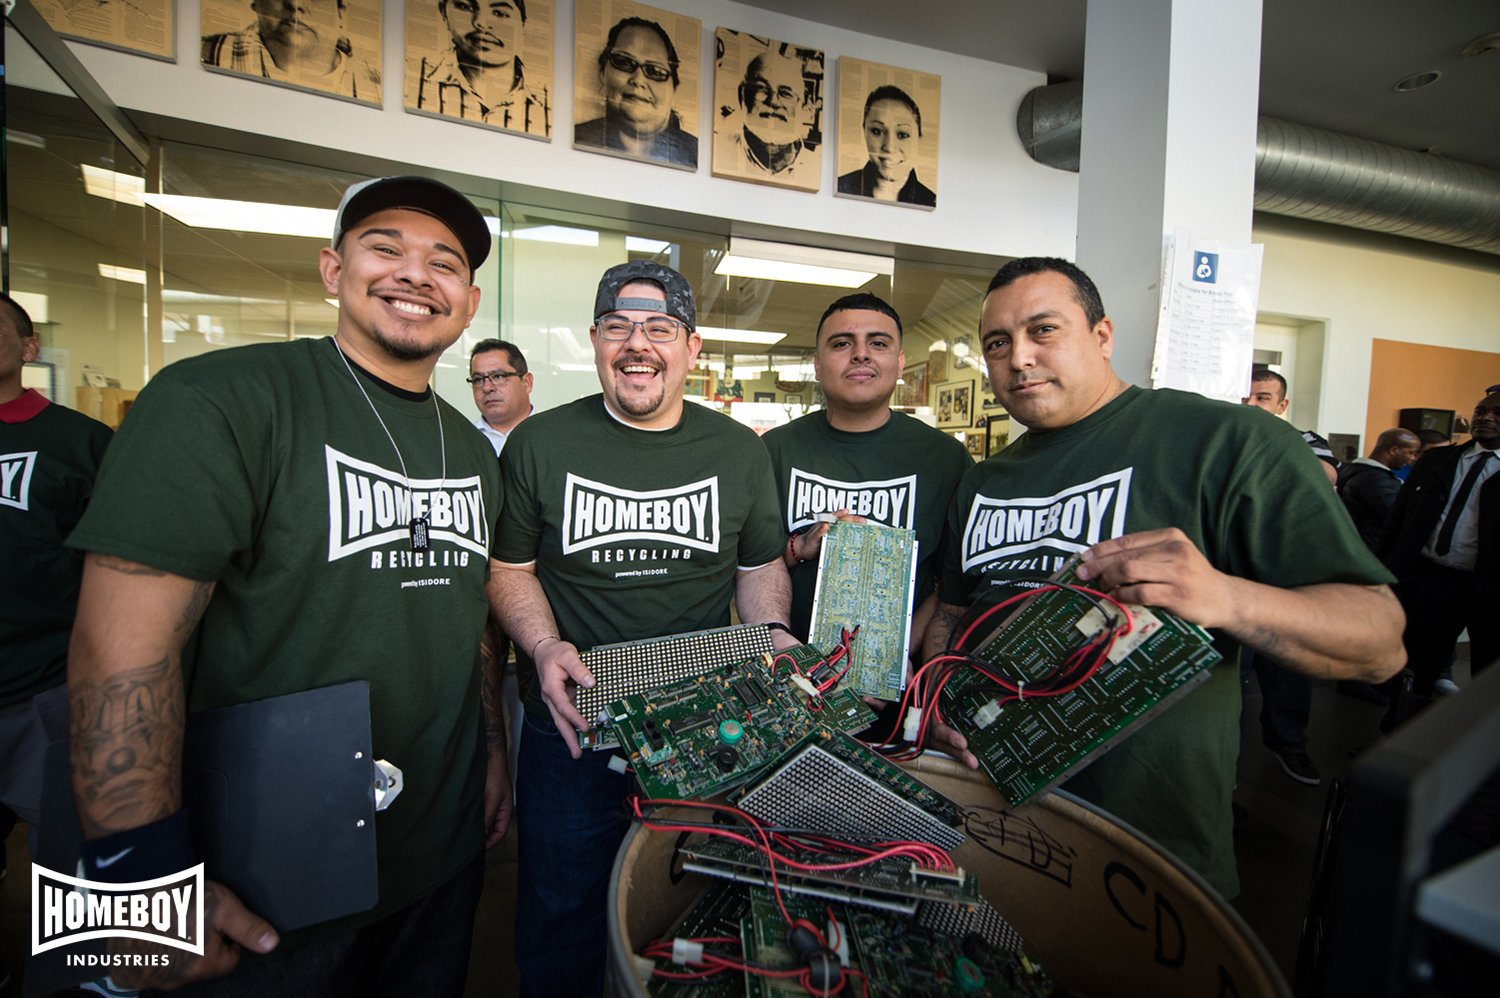 Team members with Homeboy Recycling pose together in Los Angeles. Photo courtesy of Homeboy Industries